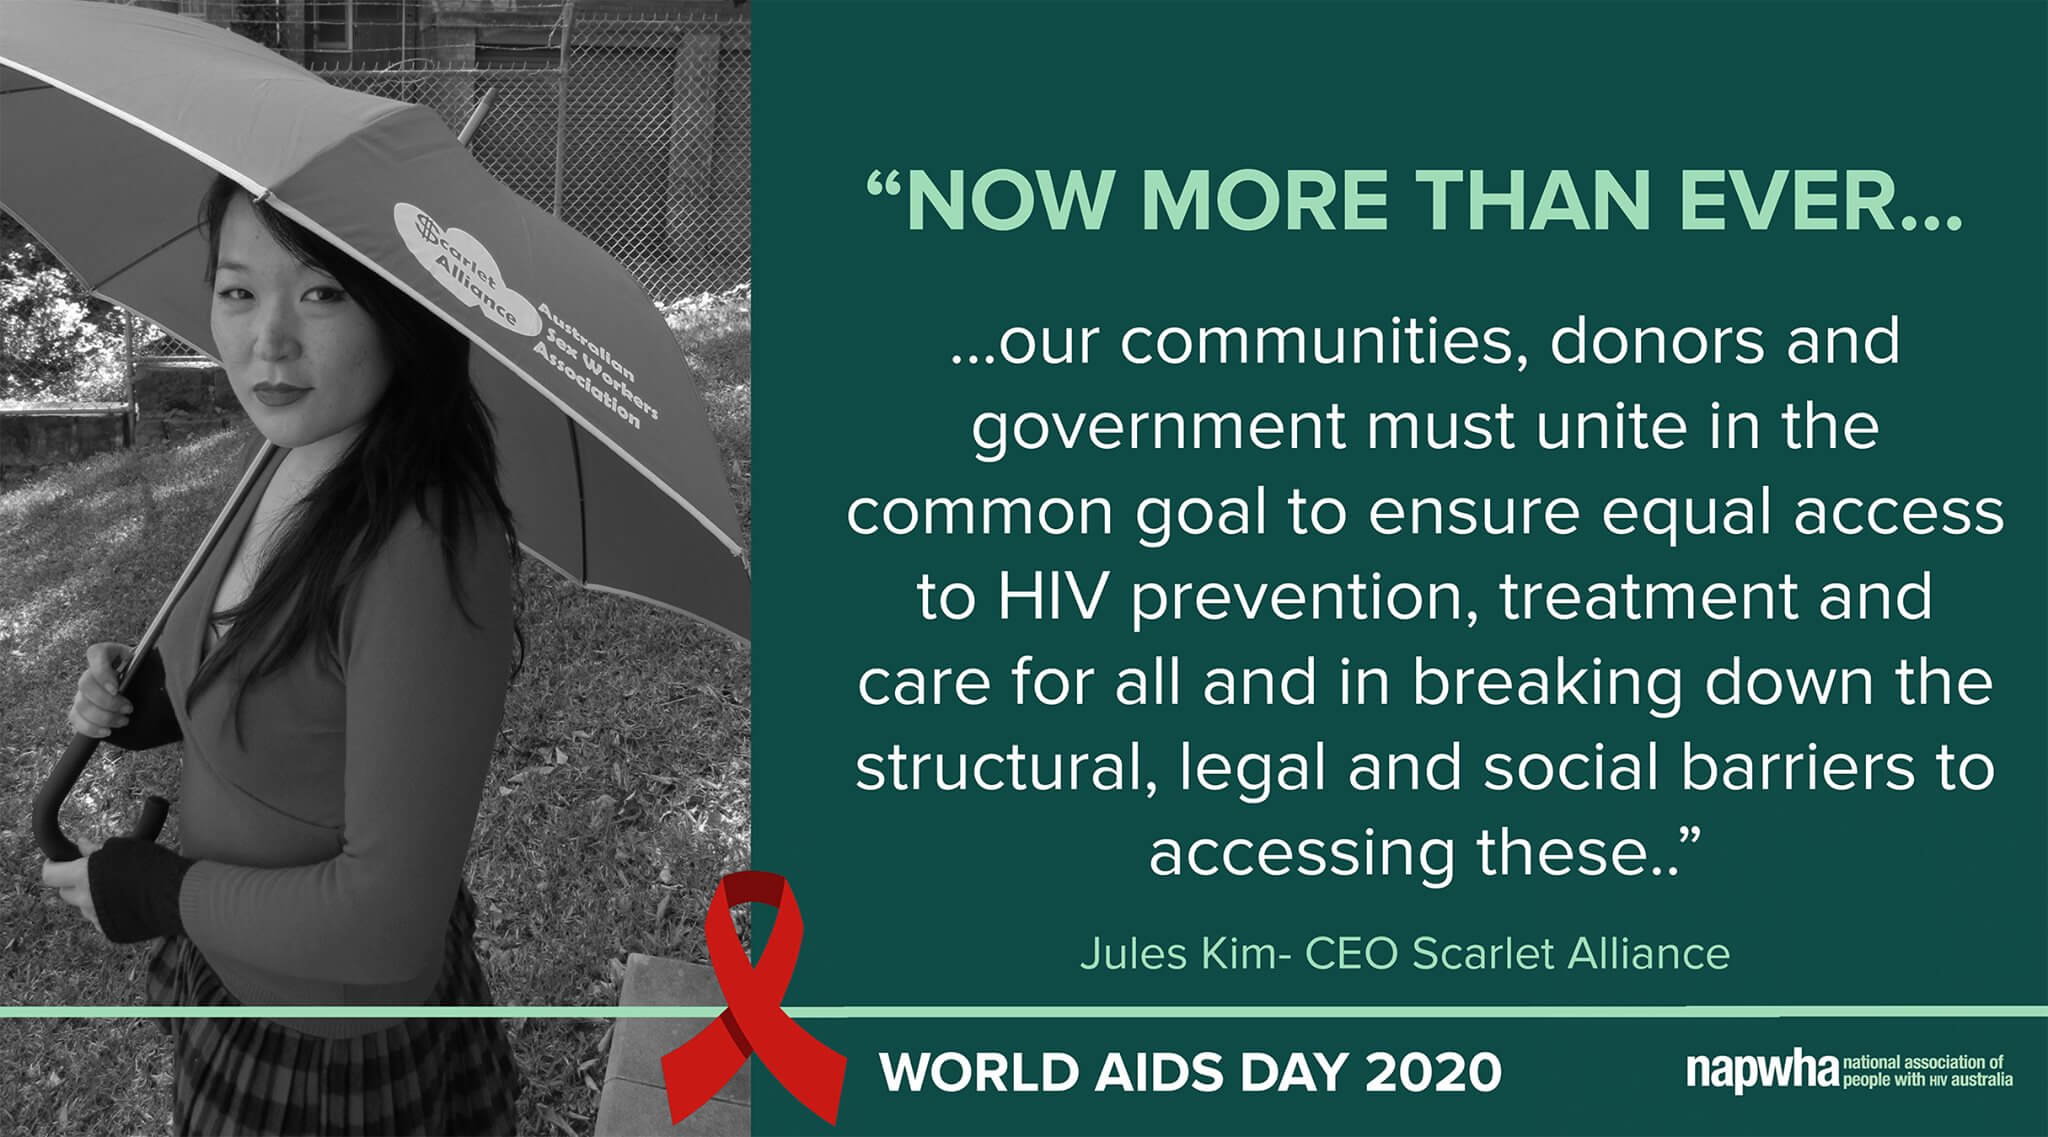 Jules Kim, CEO of Scarlet Alliance provides a World AIDS Day 2020 message